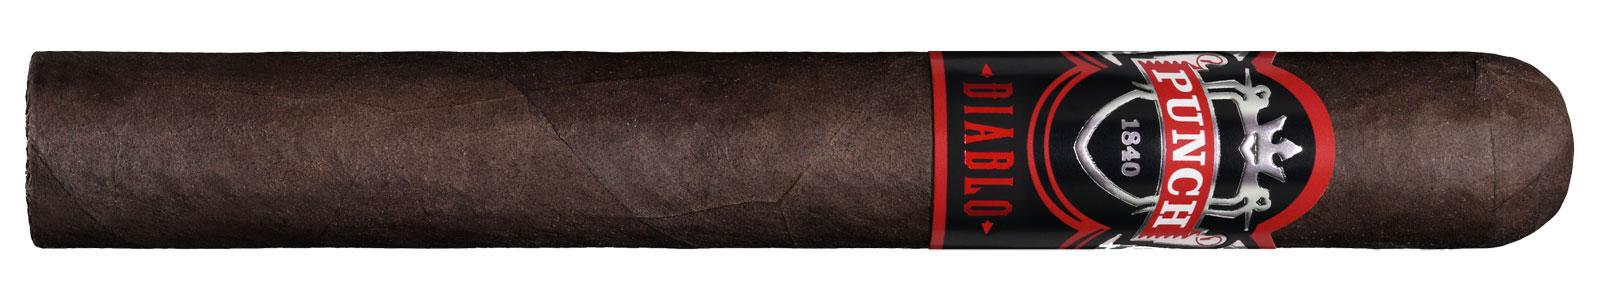 Punch Diablo is wrapped in a Sumatra-seed leaf from Ecuador that General is calling oscuro.